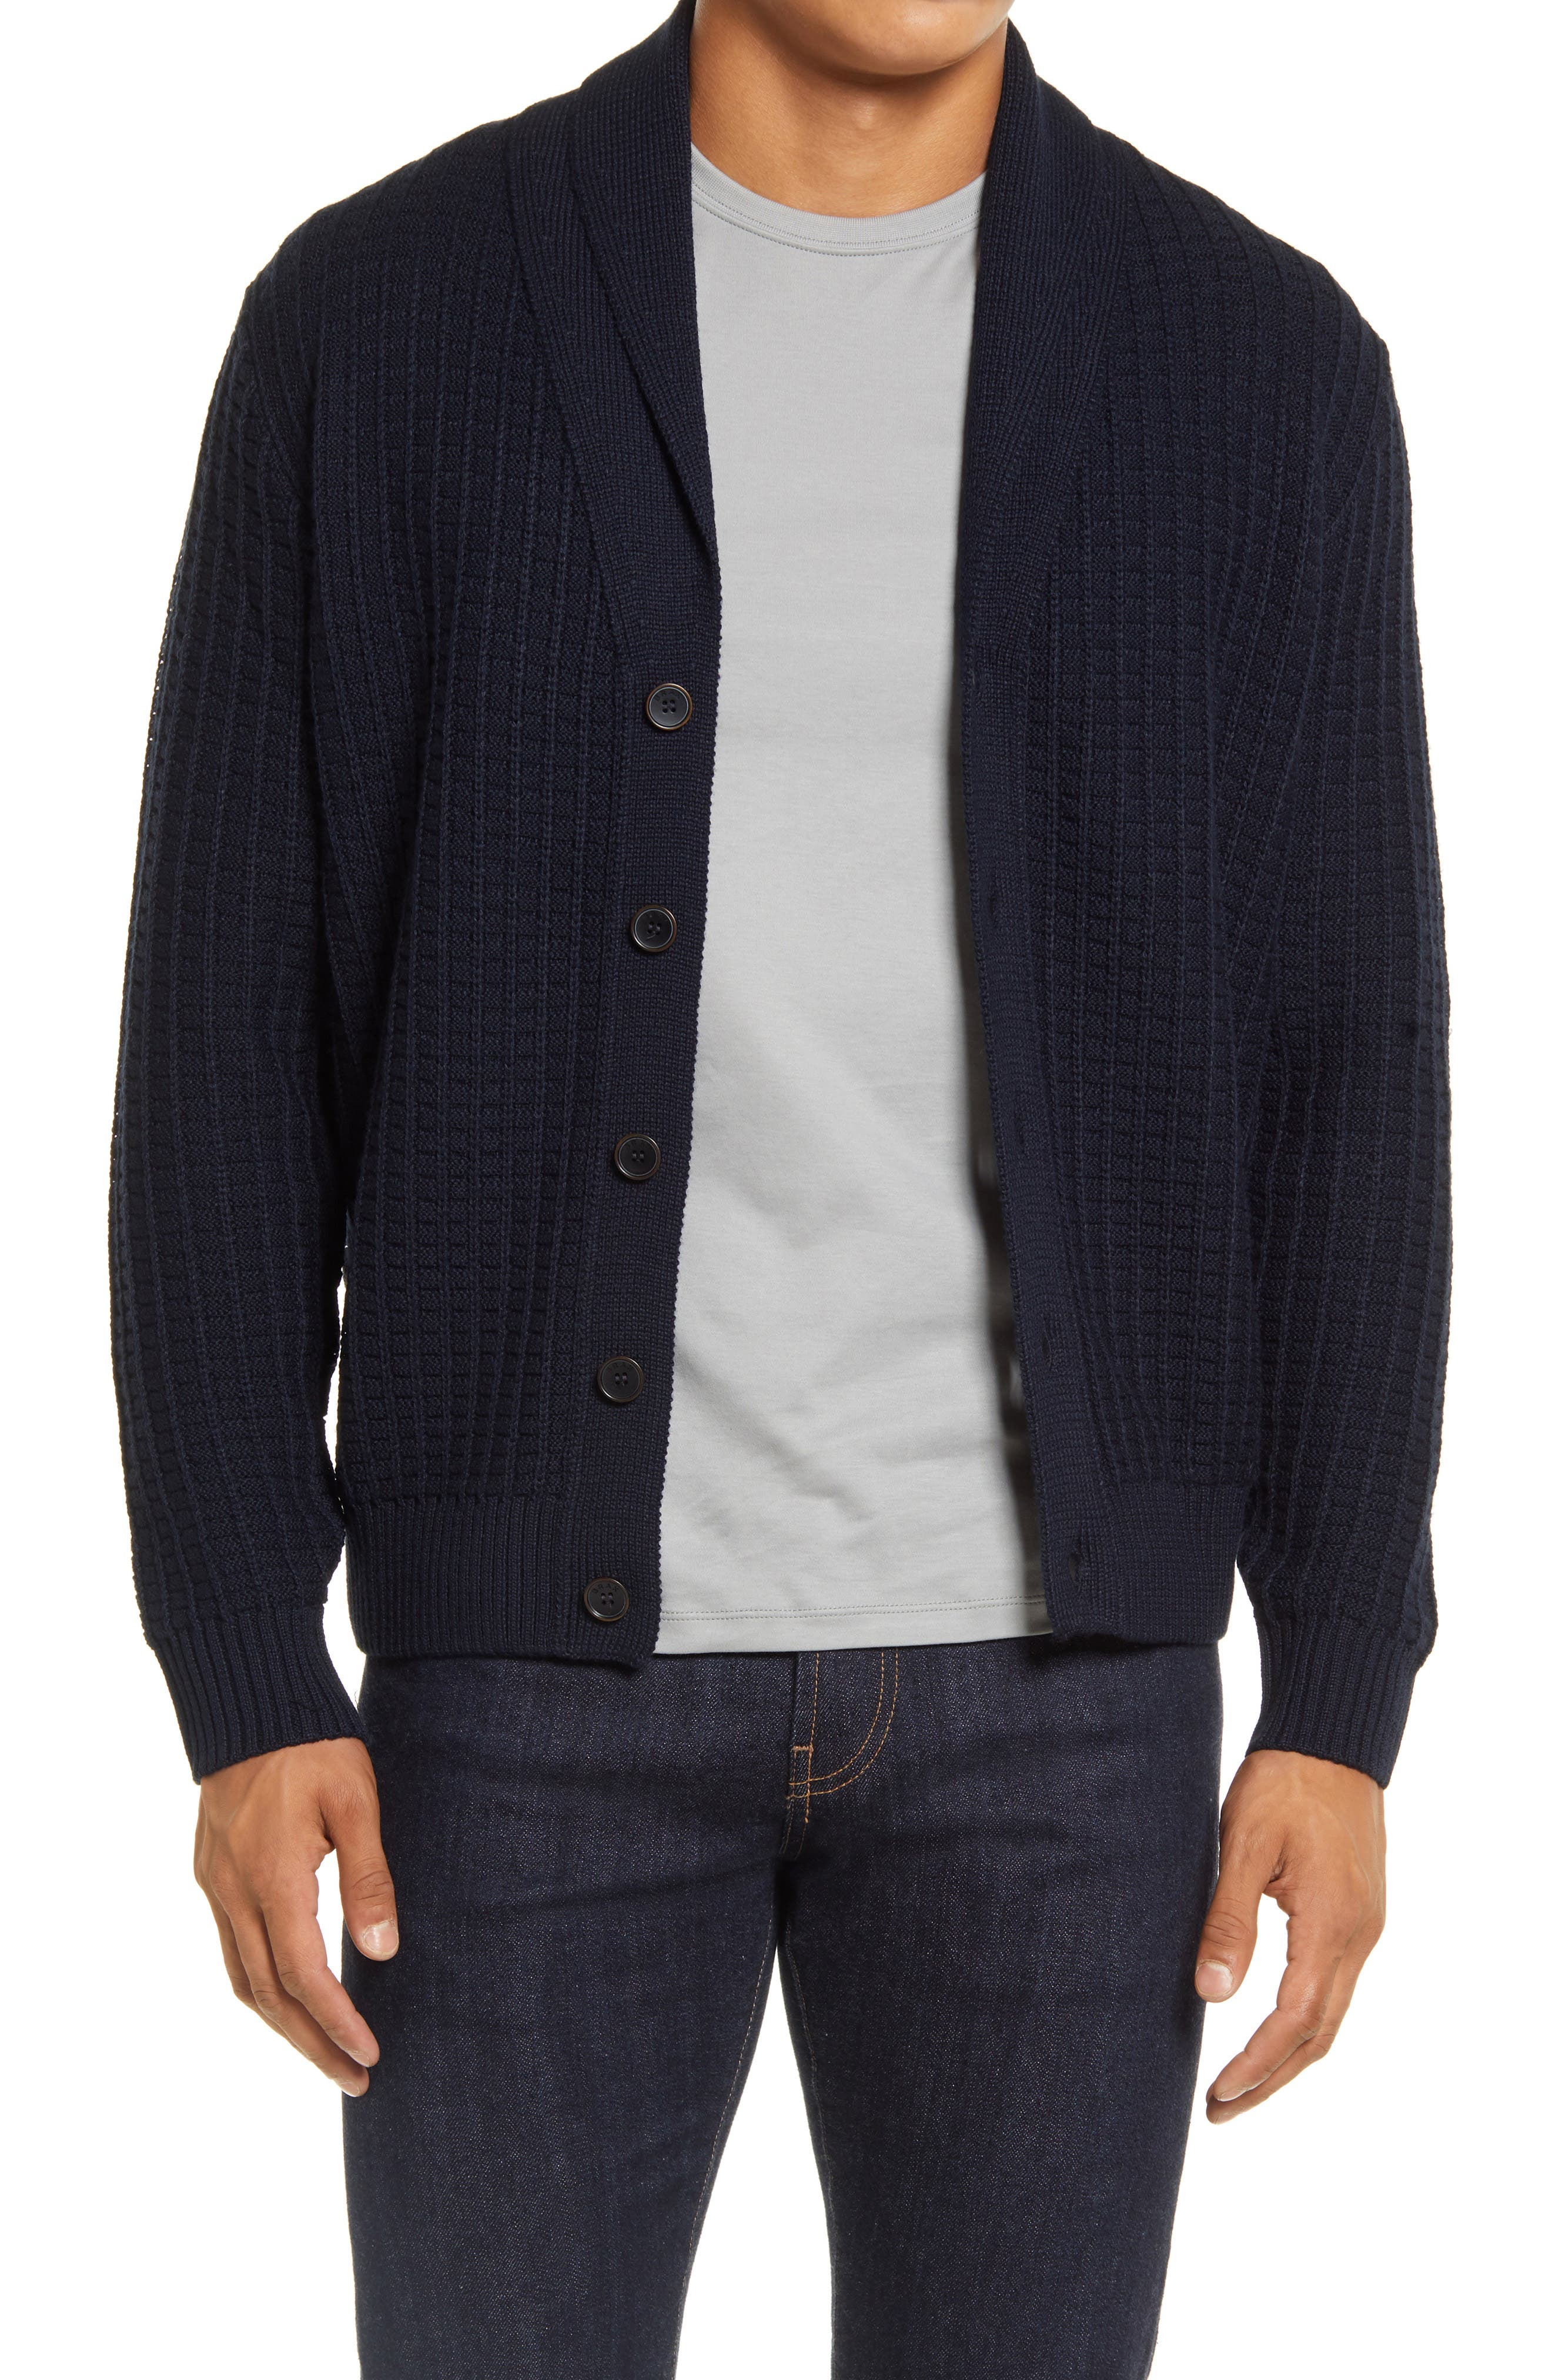 A shawl collar and roomy, layerable fit bring essential details to a cardigan crafted with soft wool to keep you comfortable in the cold or by the fire. Style Name: Brax James Shawl Collar Cardigan. Style Number: 6103792. Available in stores.